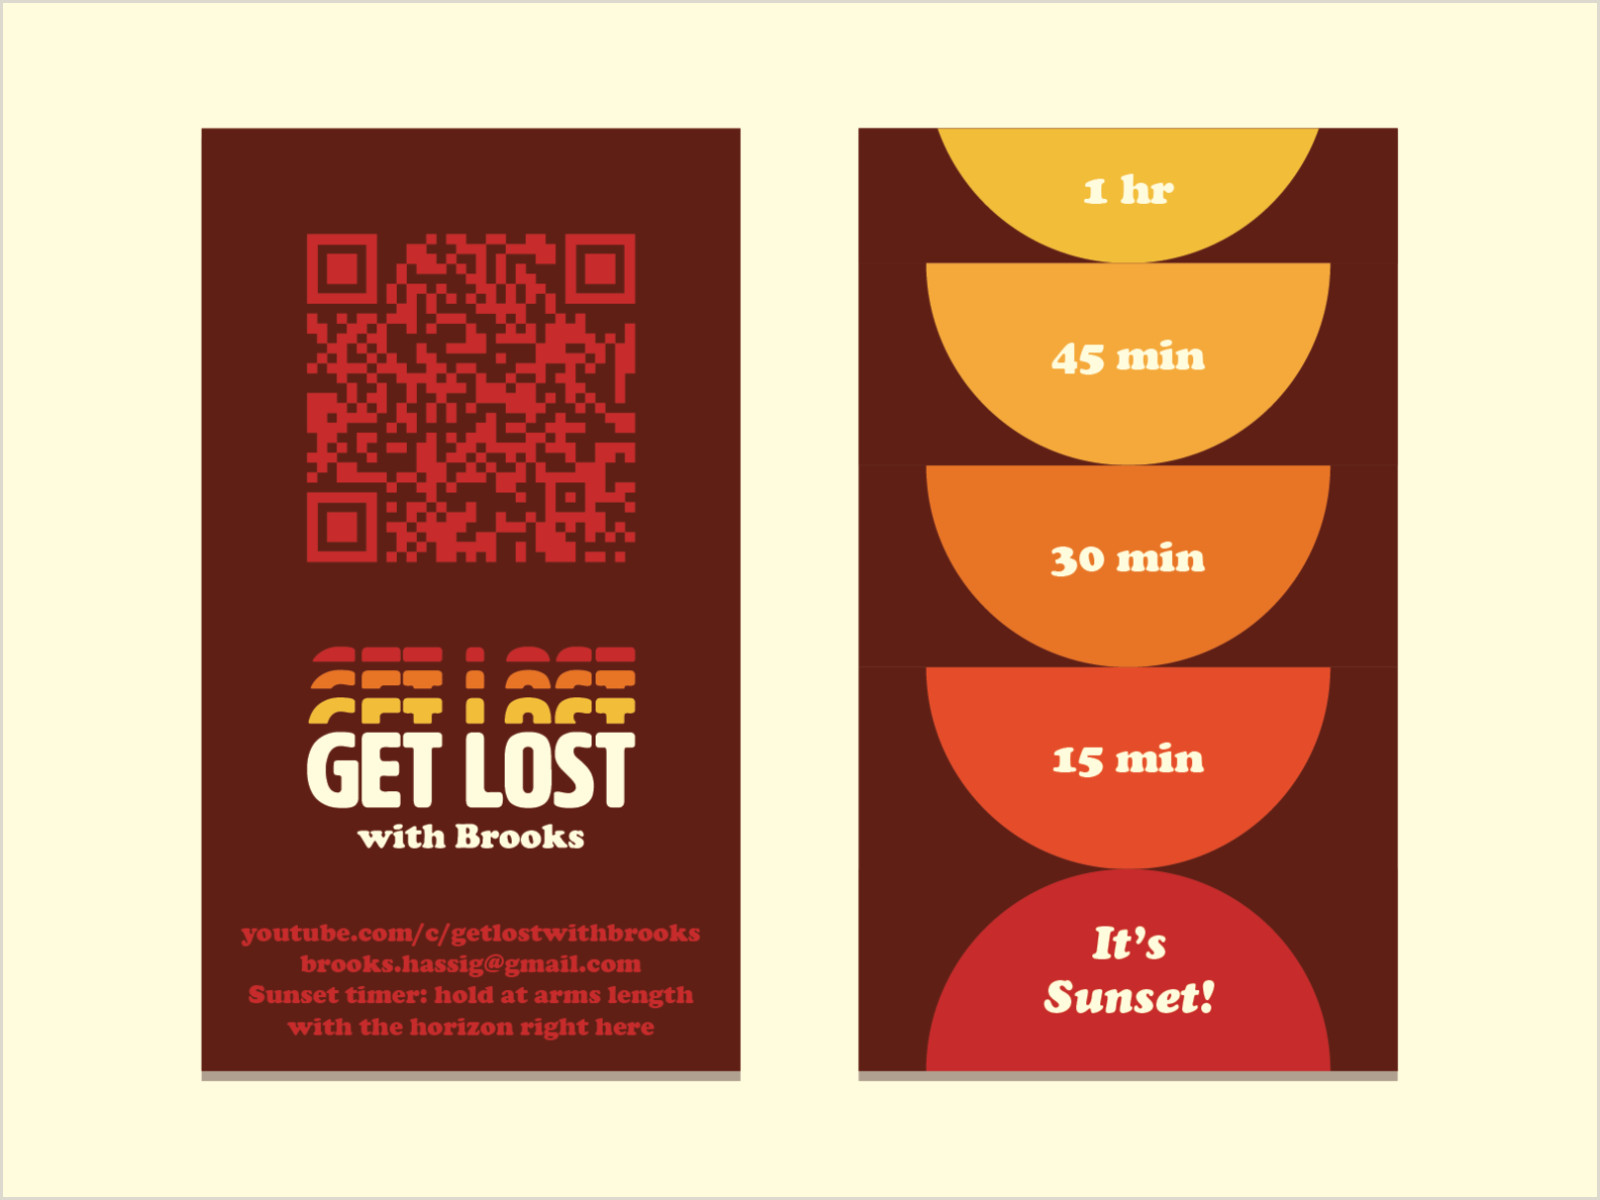 Leave Your Business Card For A Chance To Win Get Lost Business Cards By Brooks Hassig On Dribbble